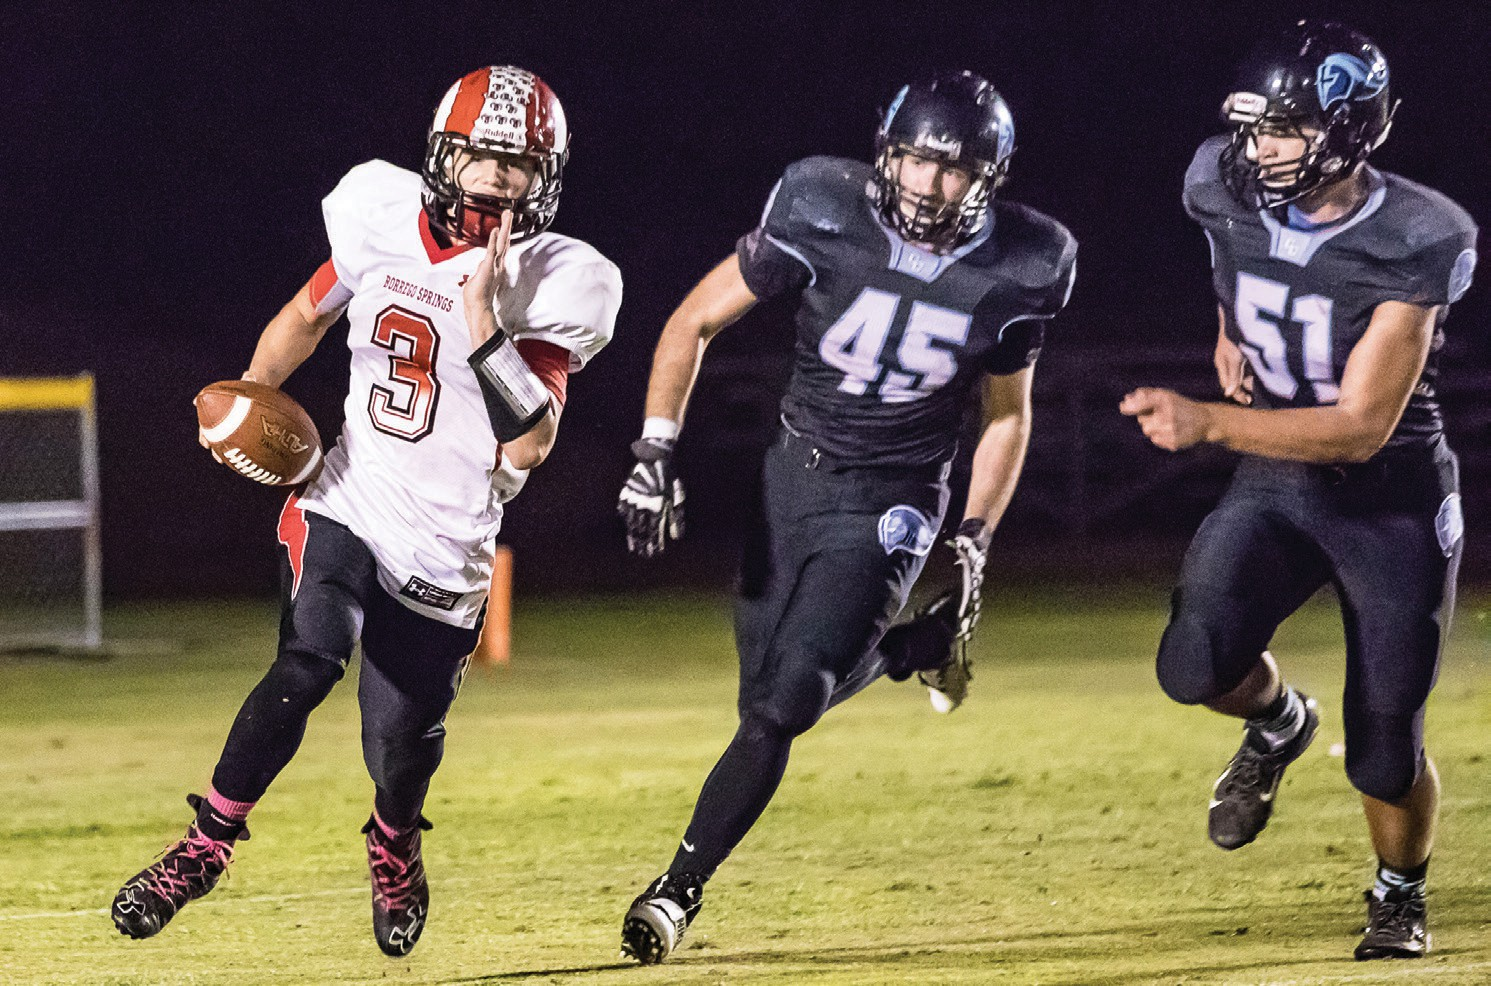 Calvin defenders like Mason Crouch (45) and Nico Brower (51) constantly harassed Borrego Springs QB Andrew Morris. Photo by Lenny Kerbs